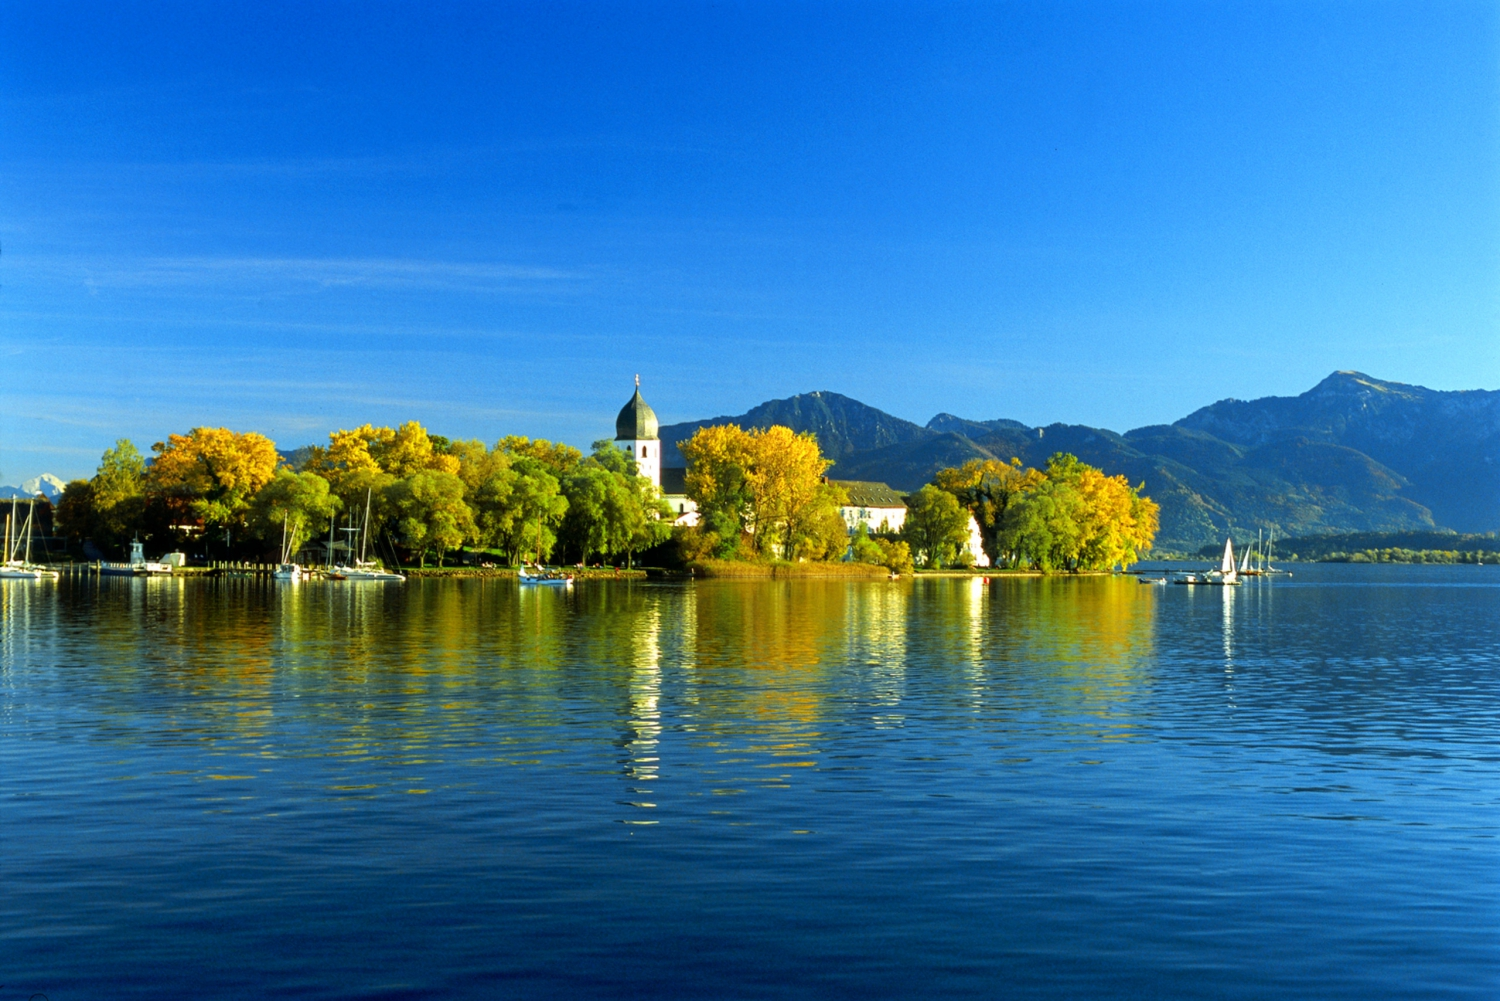 From Herrenchiemsee Palace and Boat Trip Day-Tour